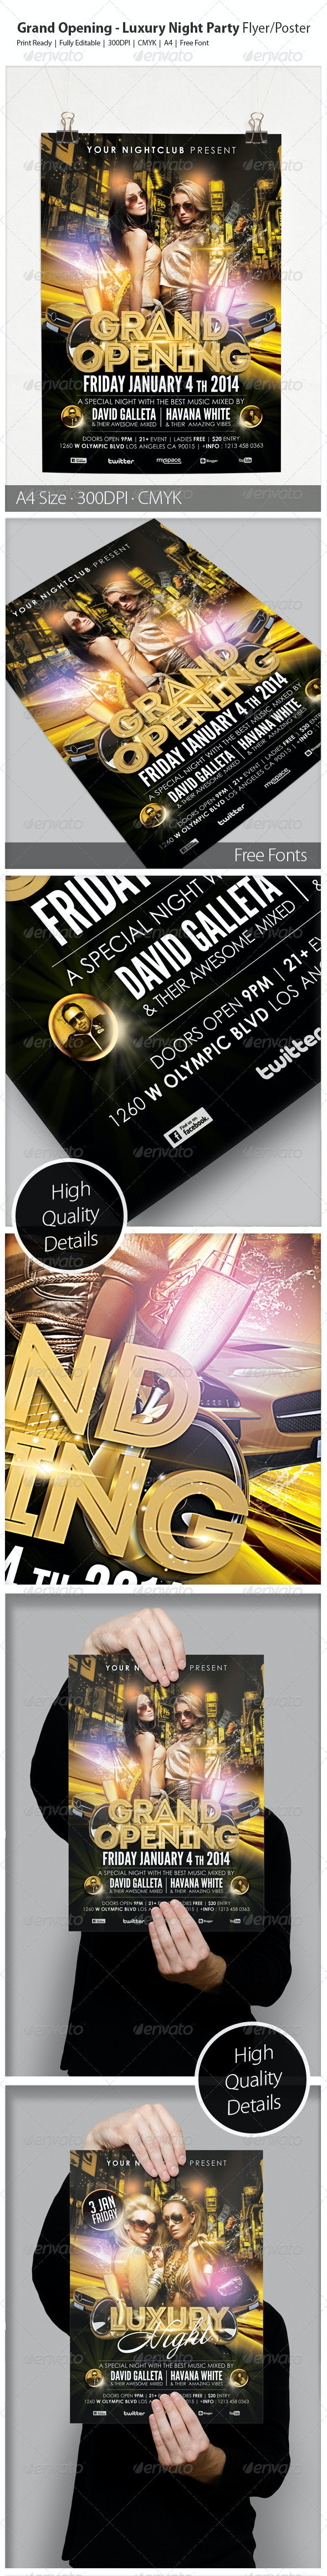 Grand Opening - Luxury Night Party Flyer/Poster - Clubs & Parties Events